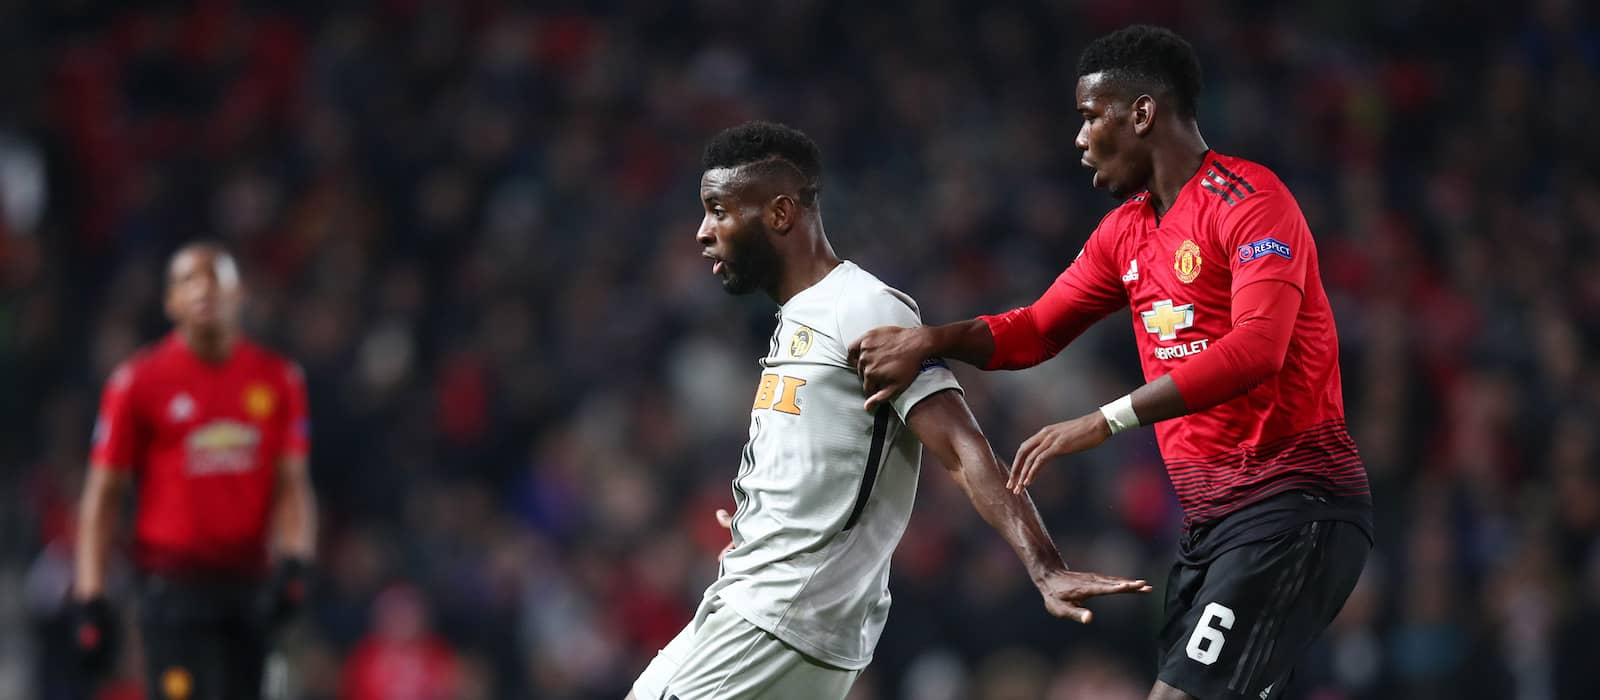 Southampton vs Manchester United: Potential XI with Fred and Paul Pogba